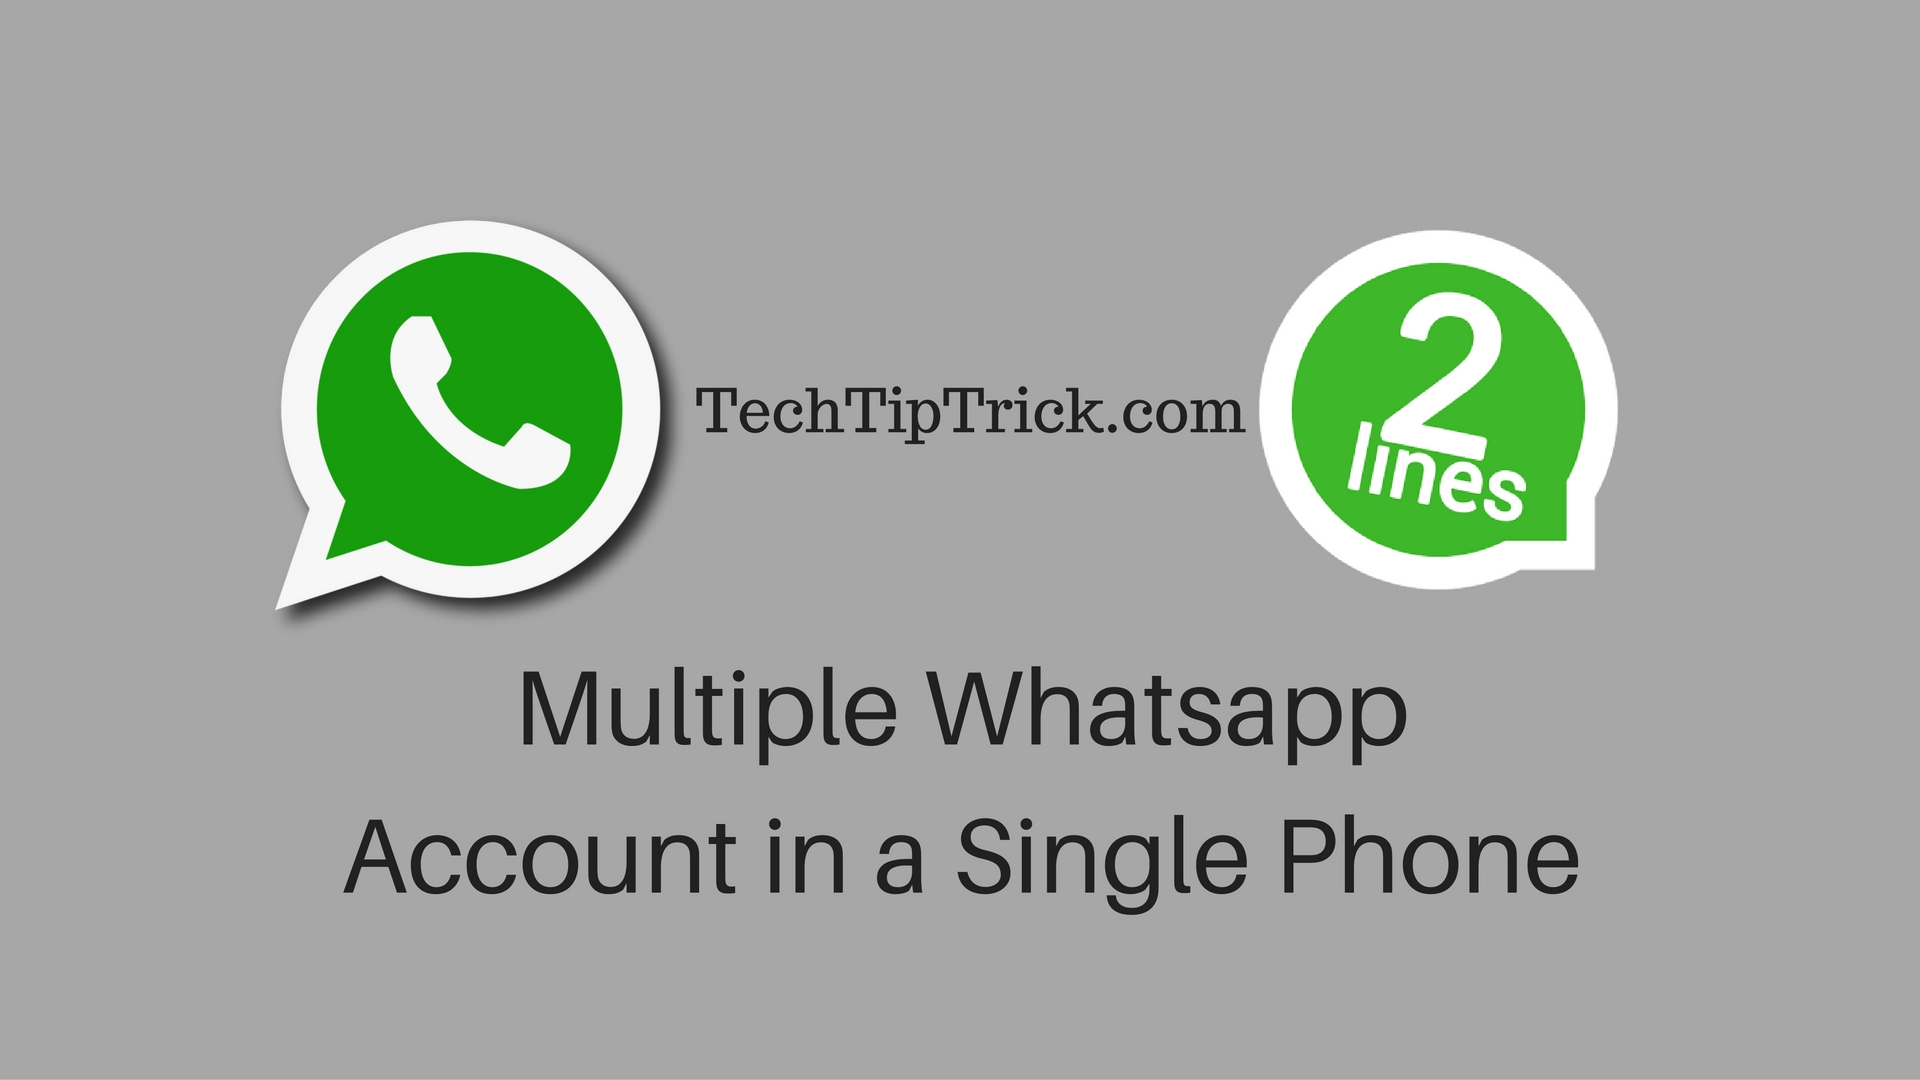 Dual Whatsapp Account in a Single Phone